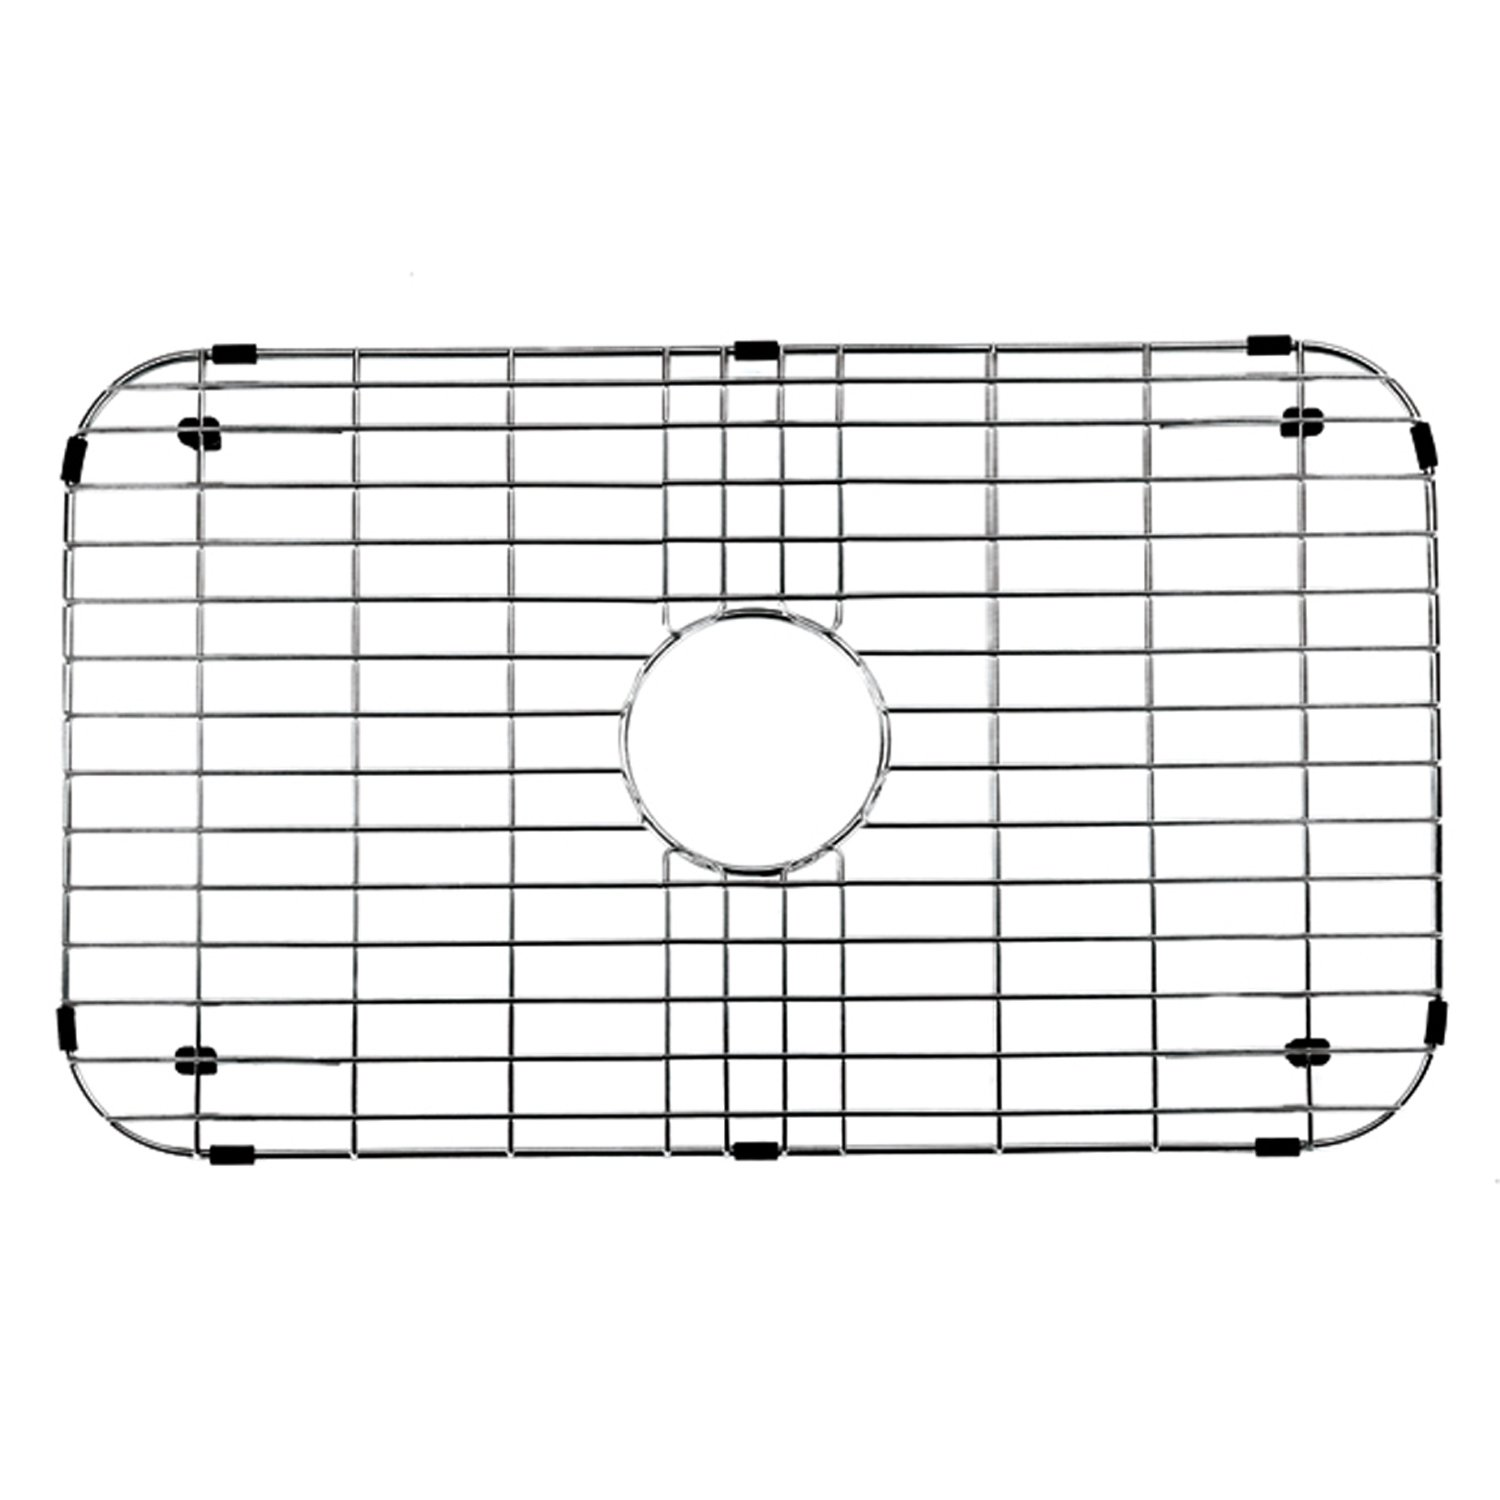 VIGO Stainless Steel Bottom Grid, 26-in. x 14.375-in. by VIGO